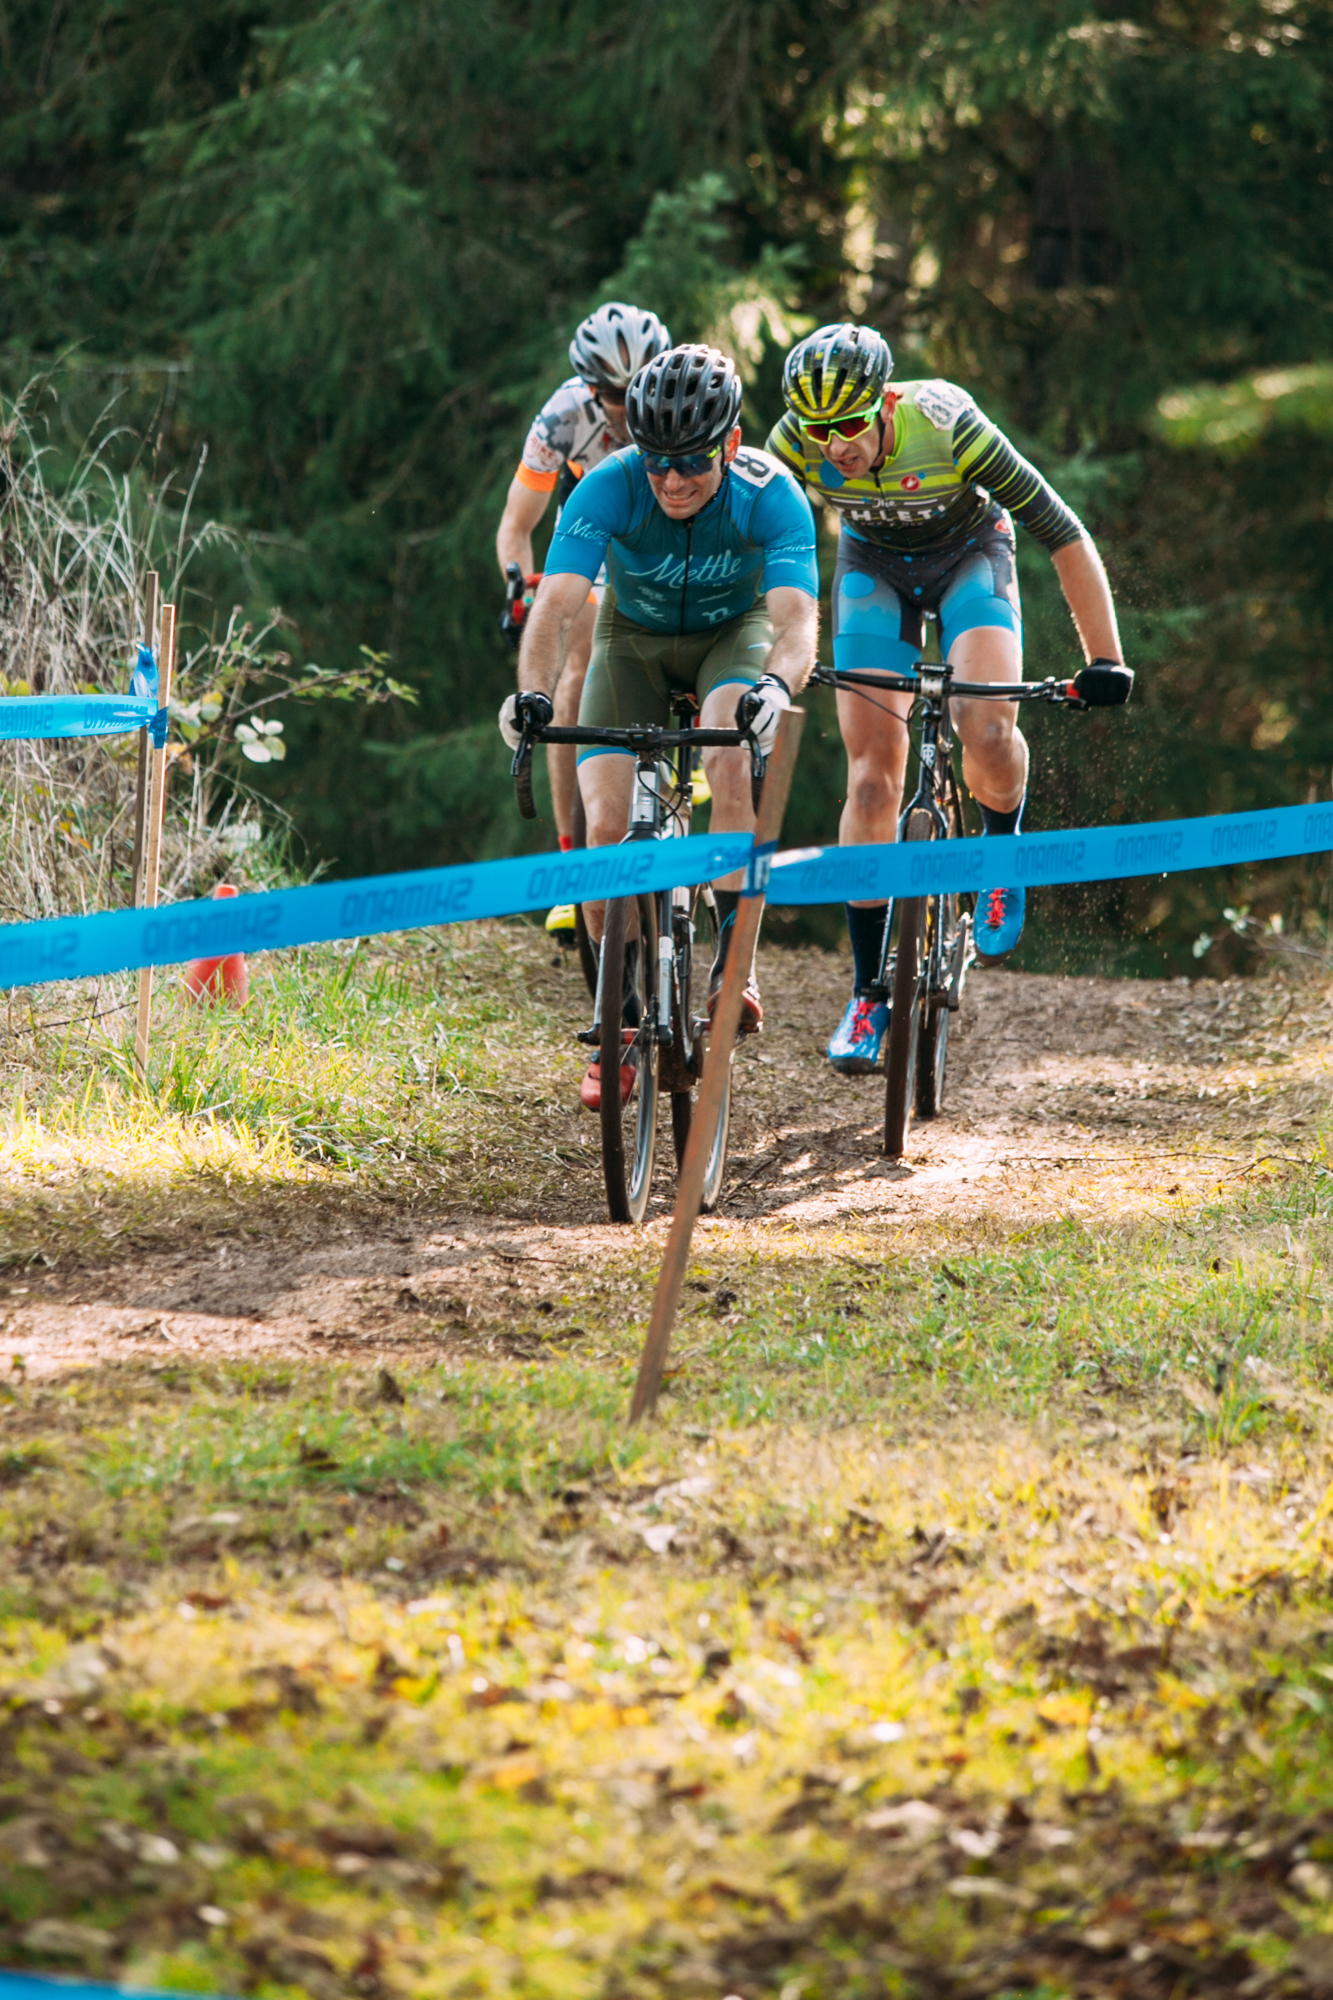 Cyclocross18_CCCX_RainierHS-147-mettlecycling.jpg